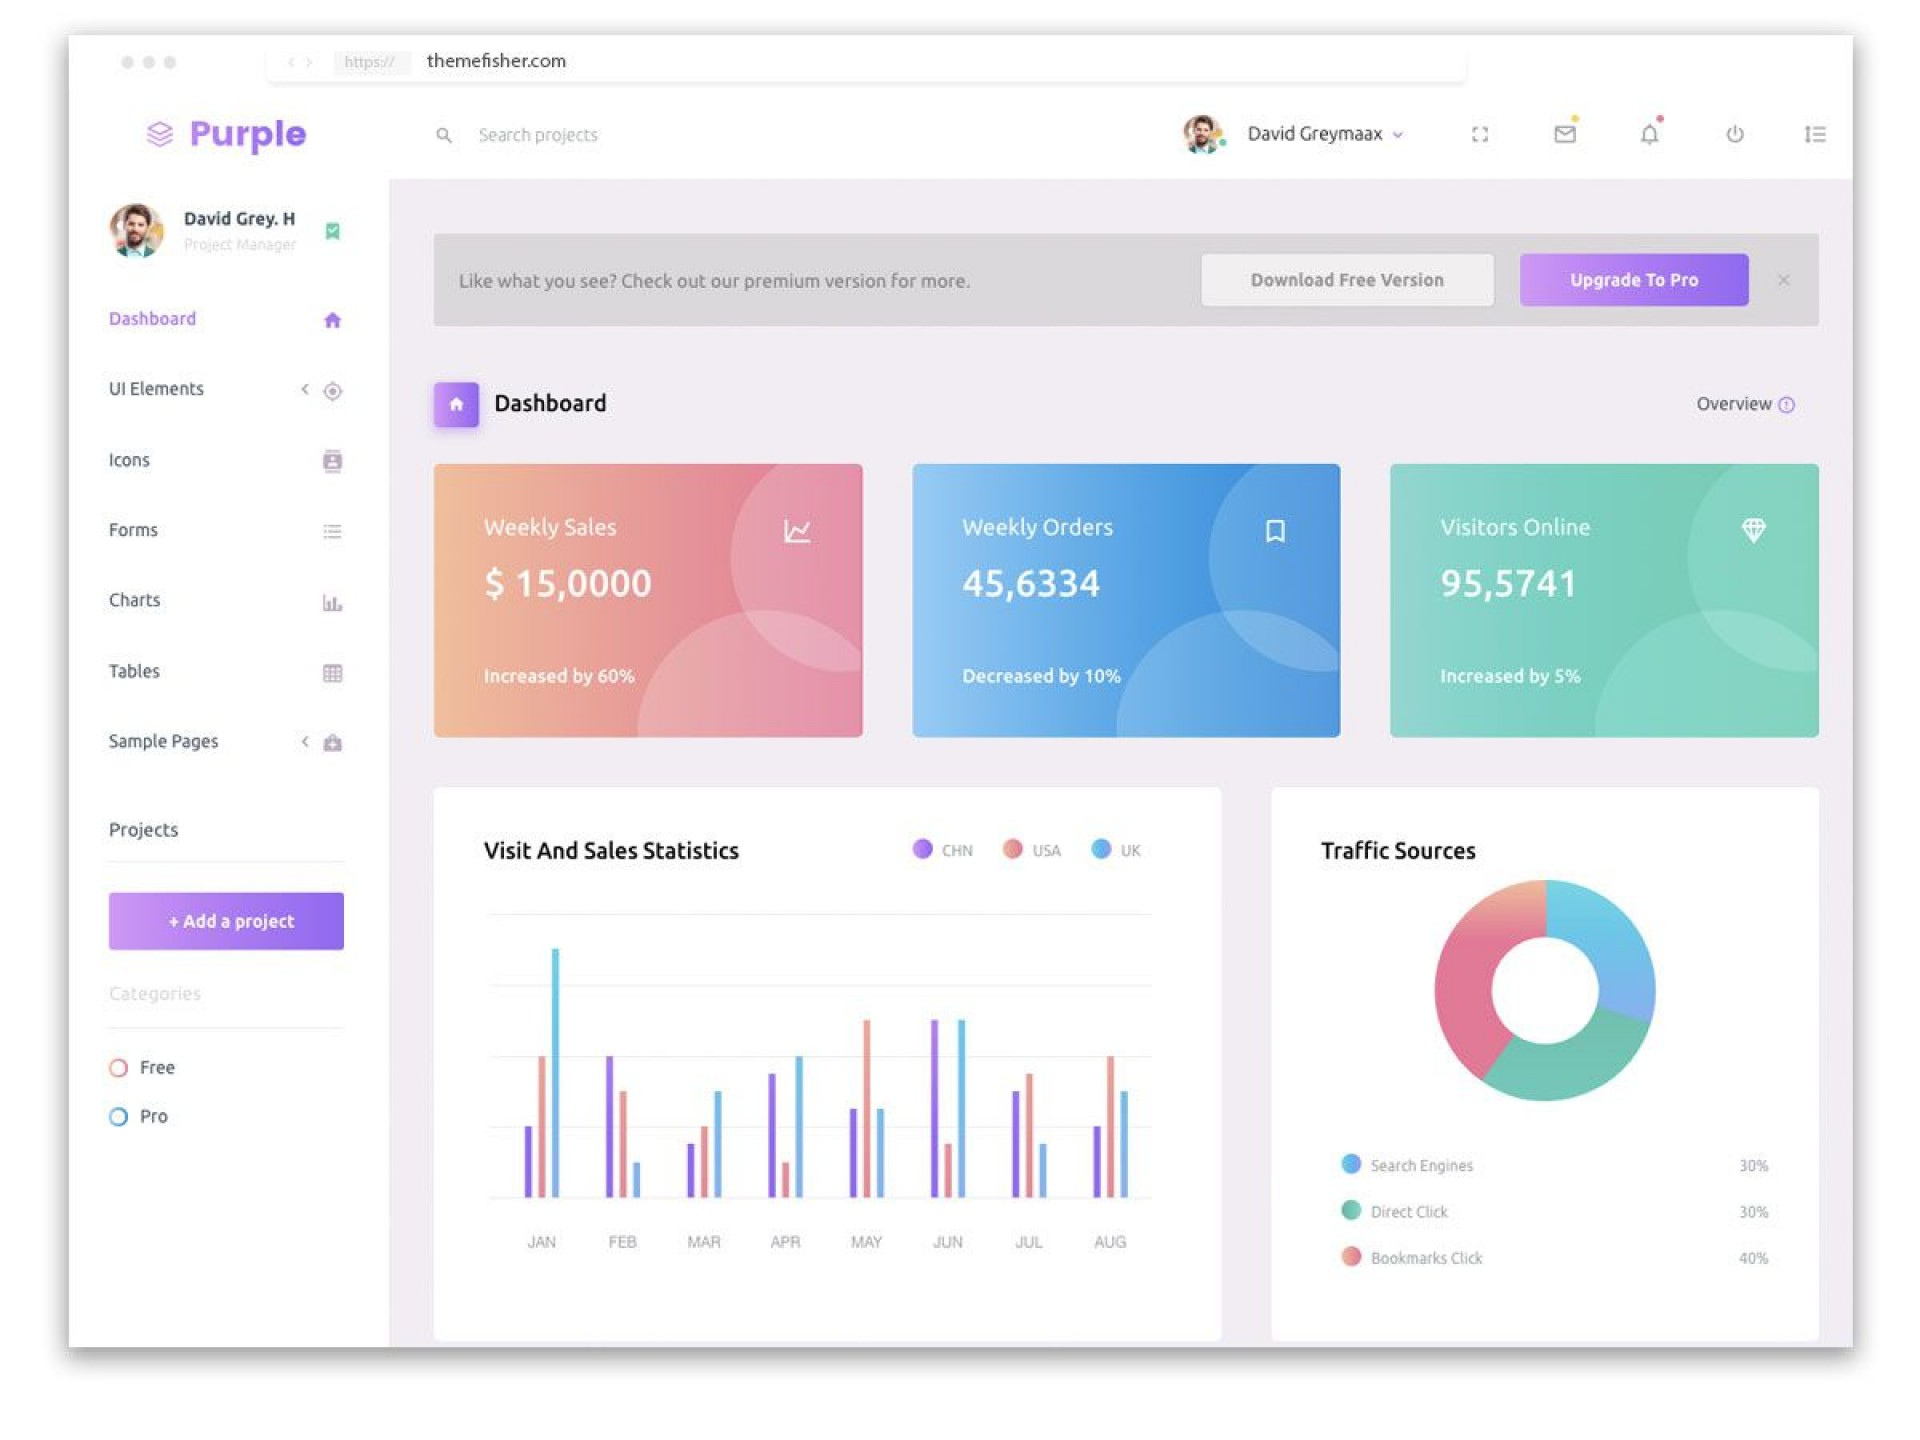 009 Staggering Project Management Website Template Free Download Idea  Software1920